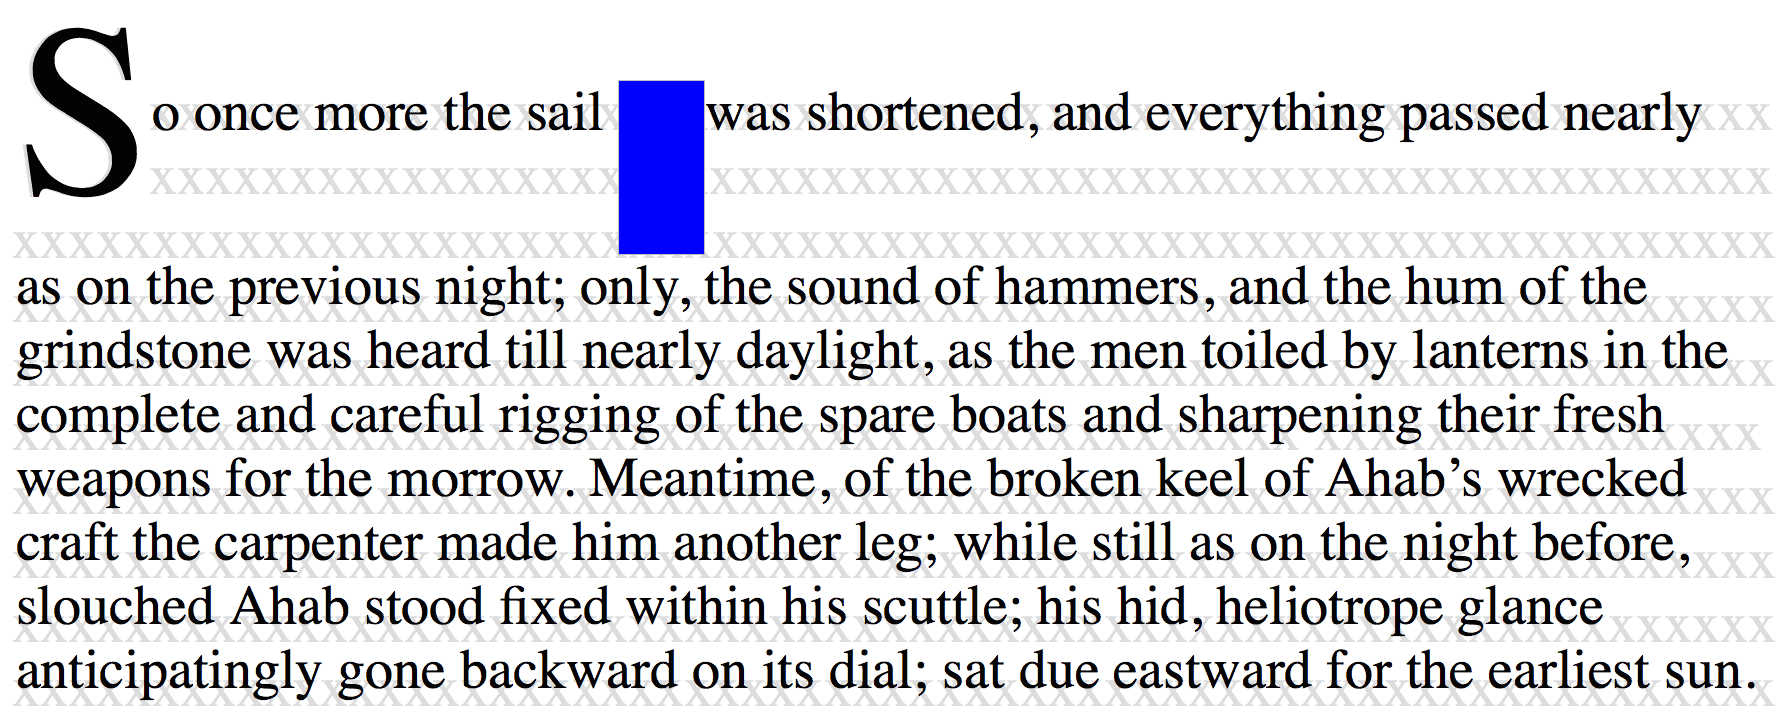 text underlay shows how initial letter alignment is not affected by the content of the spanned lines